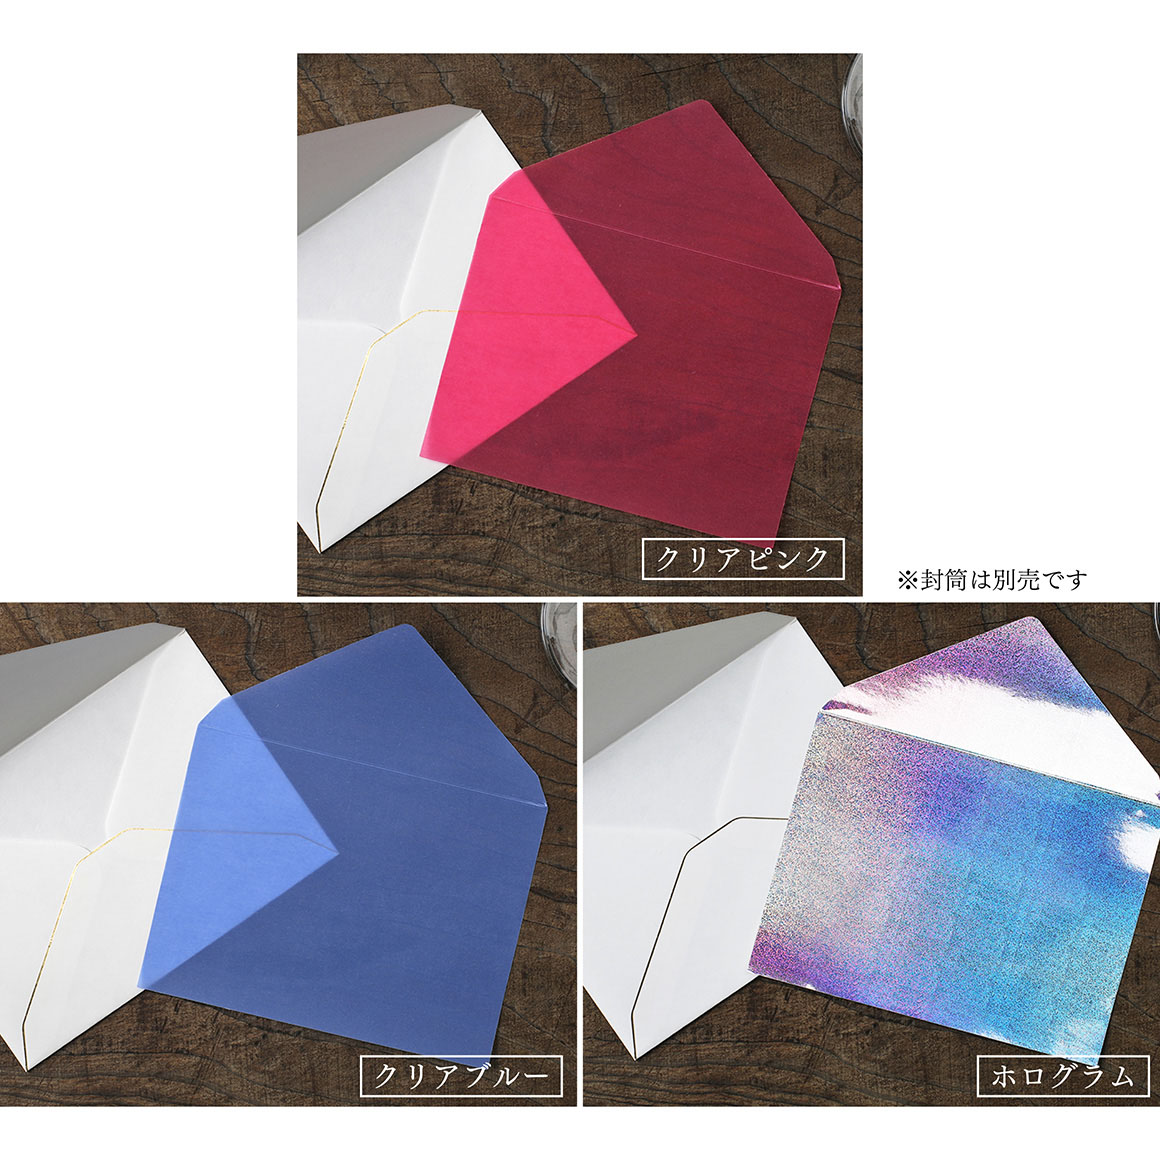 ENVELOPE DECORATION PAPER封筒飾り紙